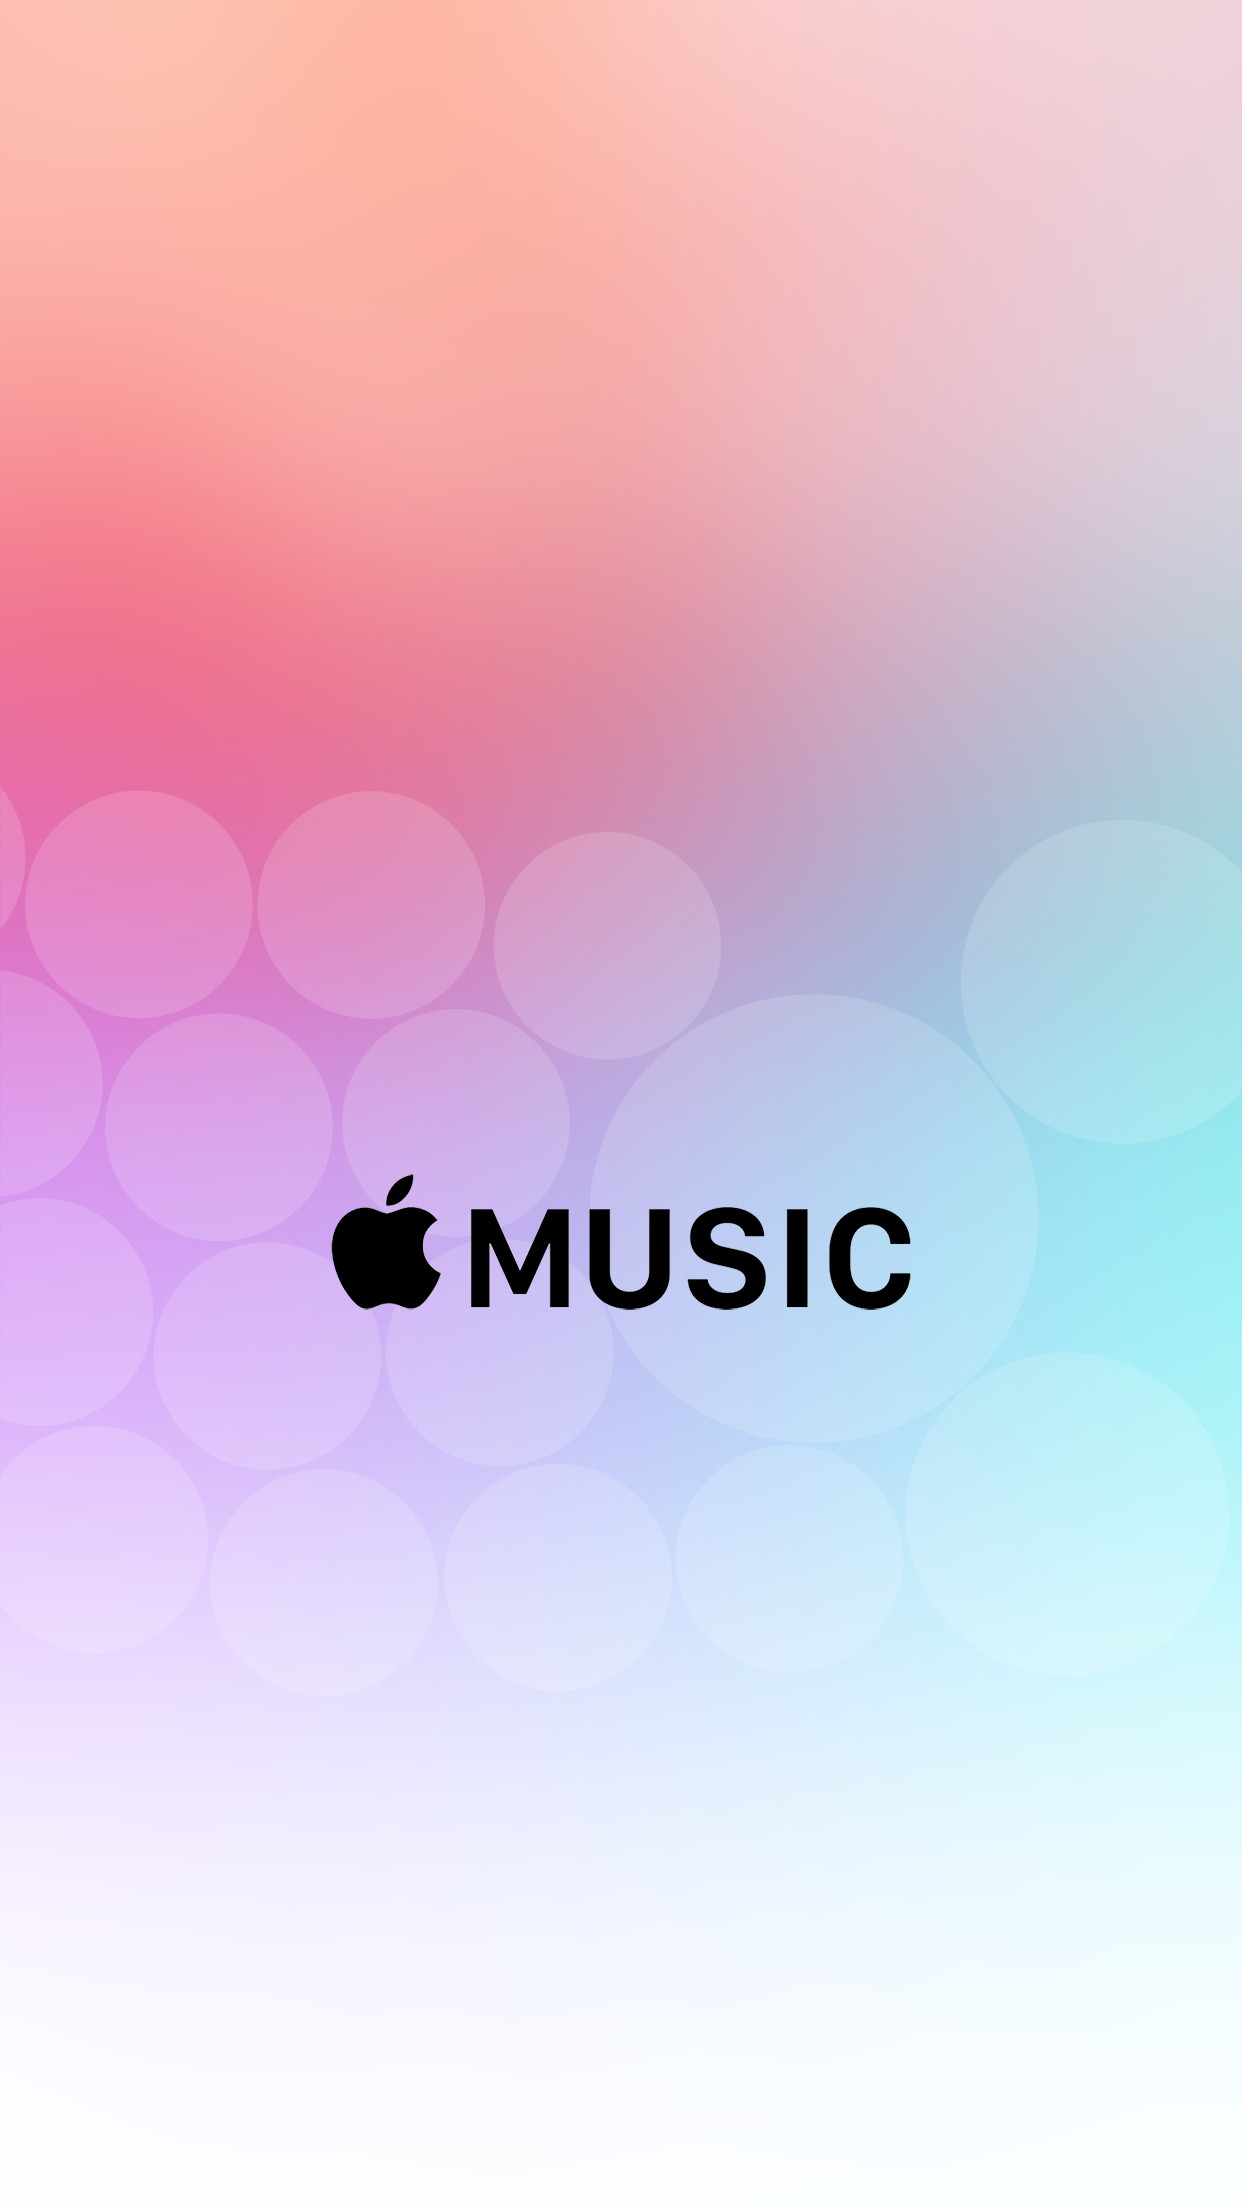 Res: 1242x2208, Apple iPhone 6 Wallpapers Pack - Bing images · Music WallpaperPink ...